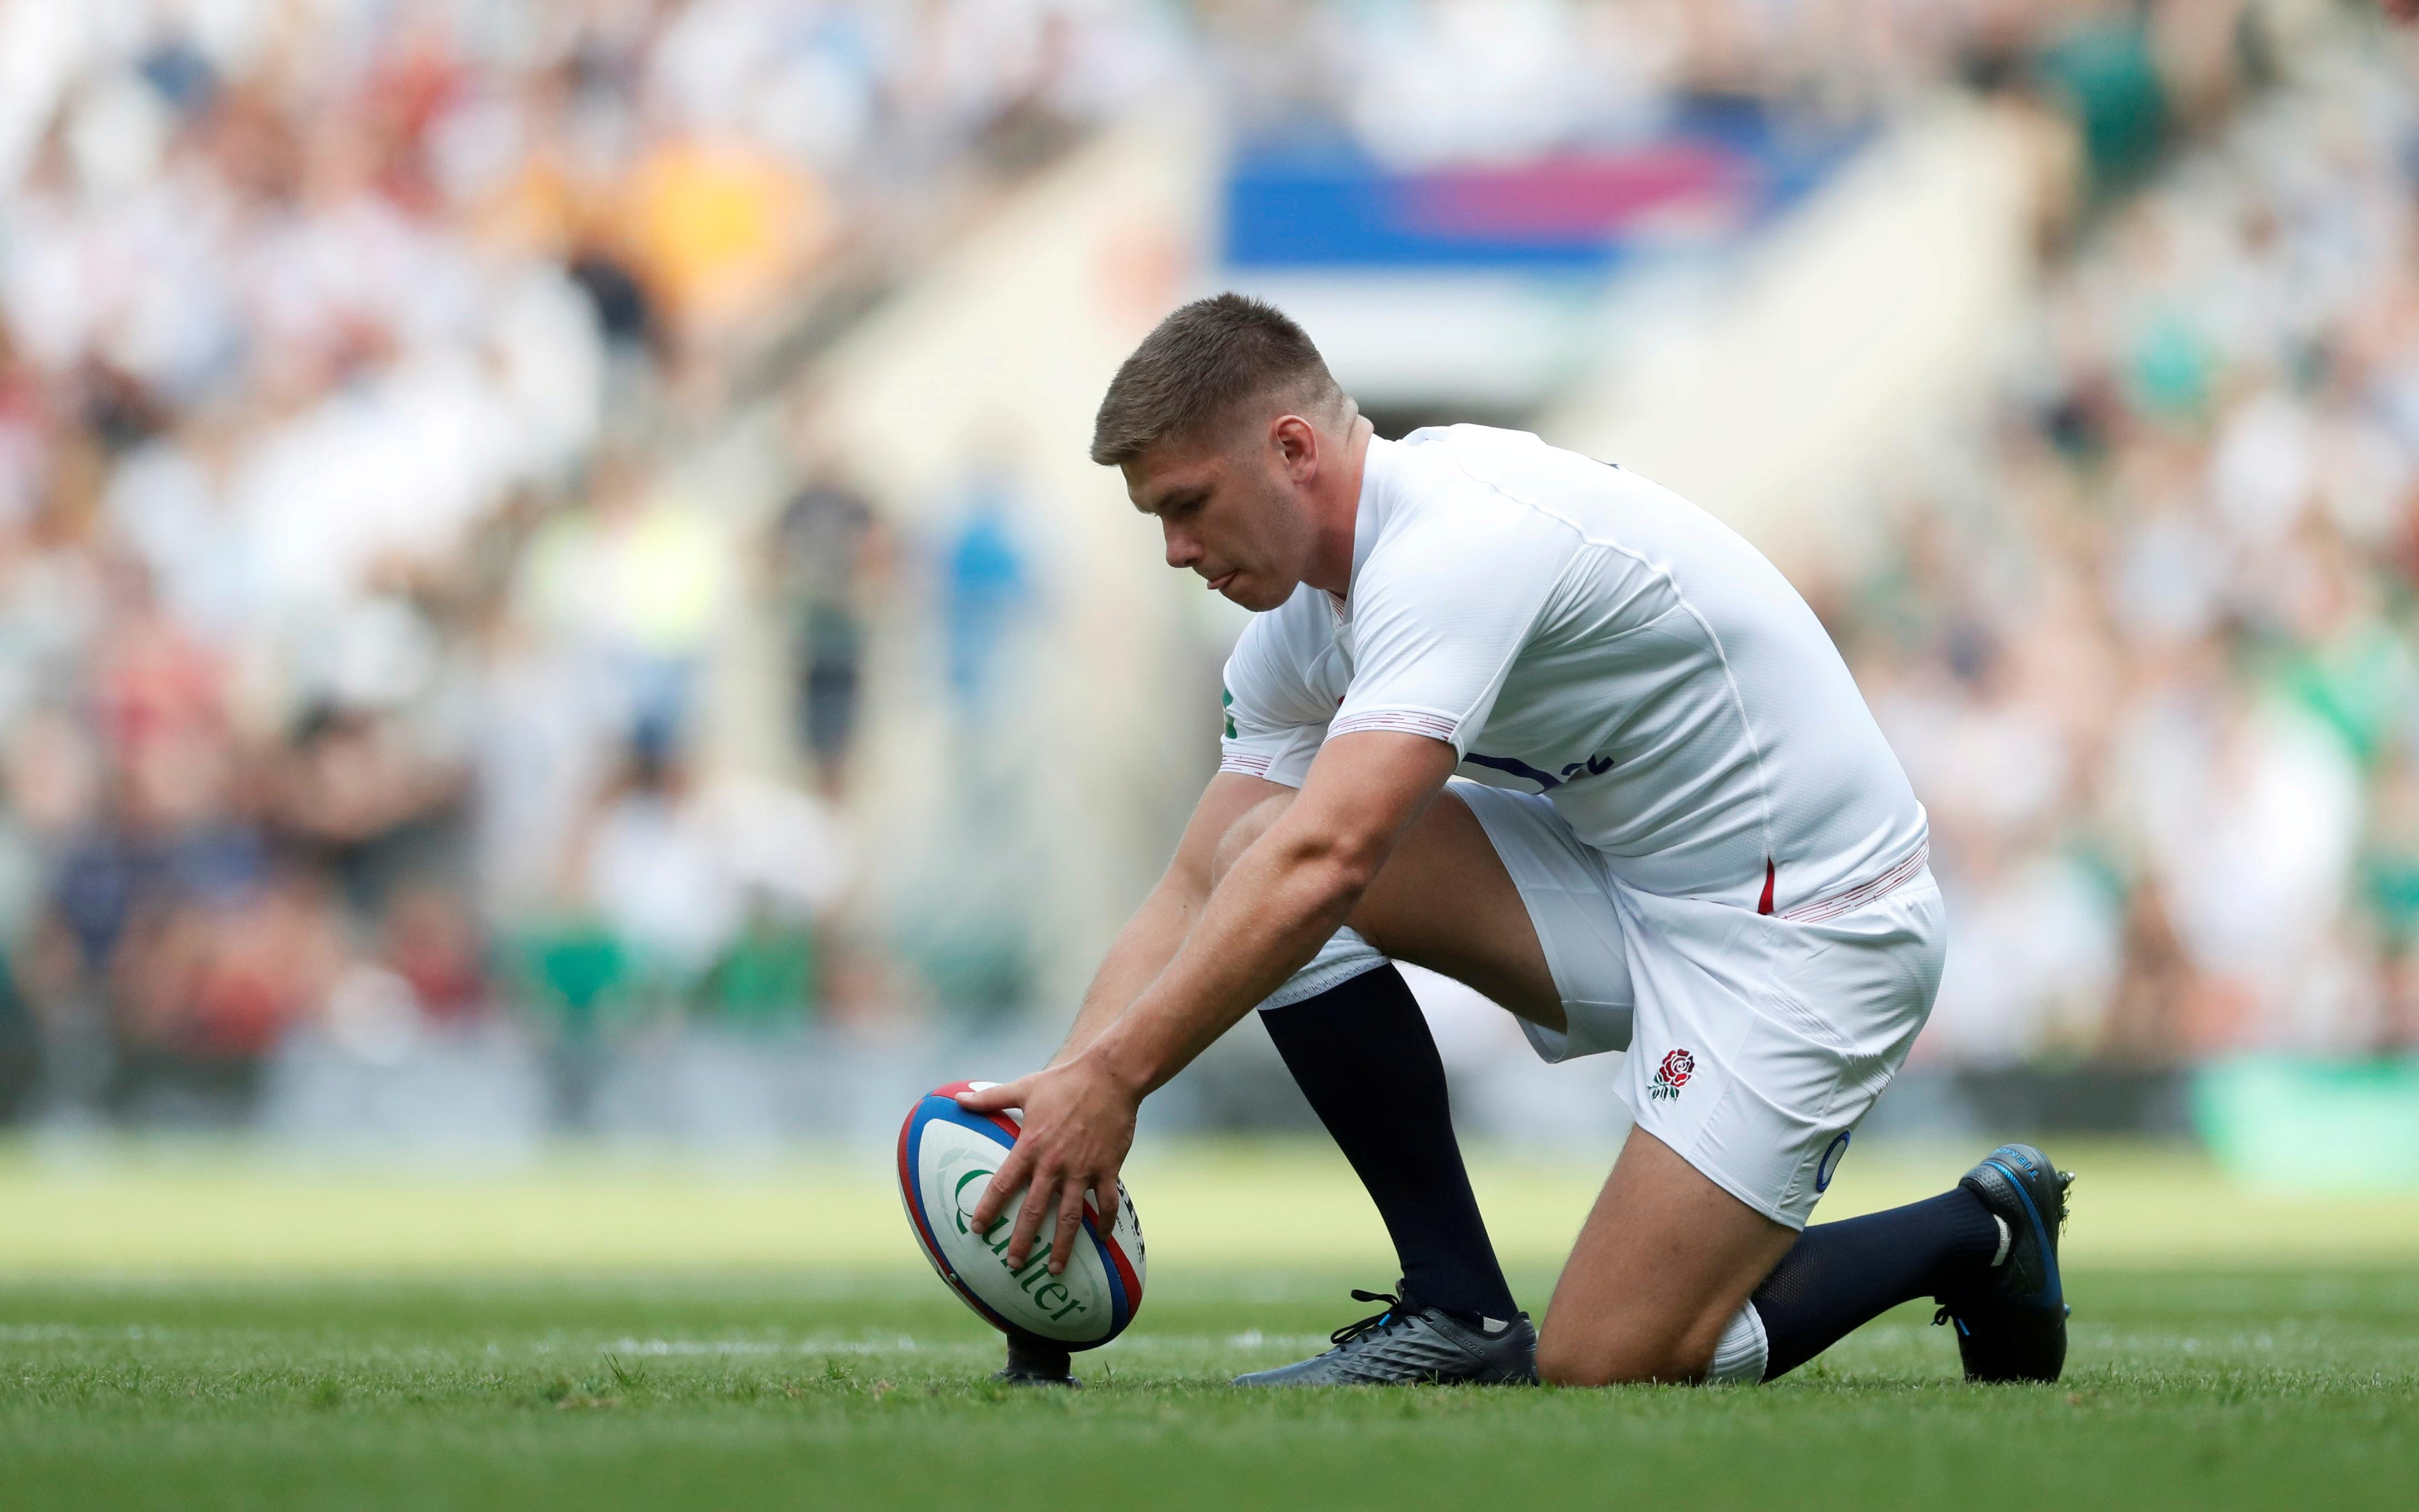 England's Farrell tackles discipline with changed technique